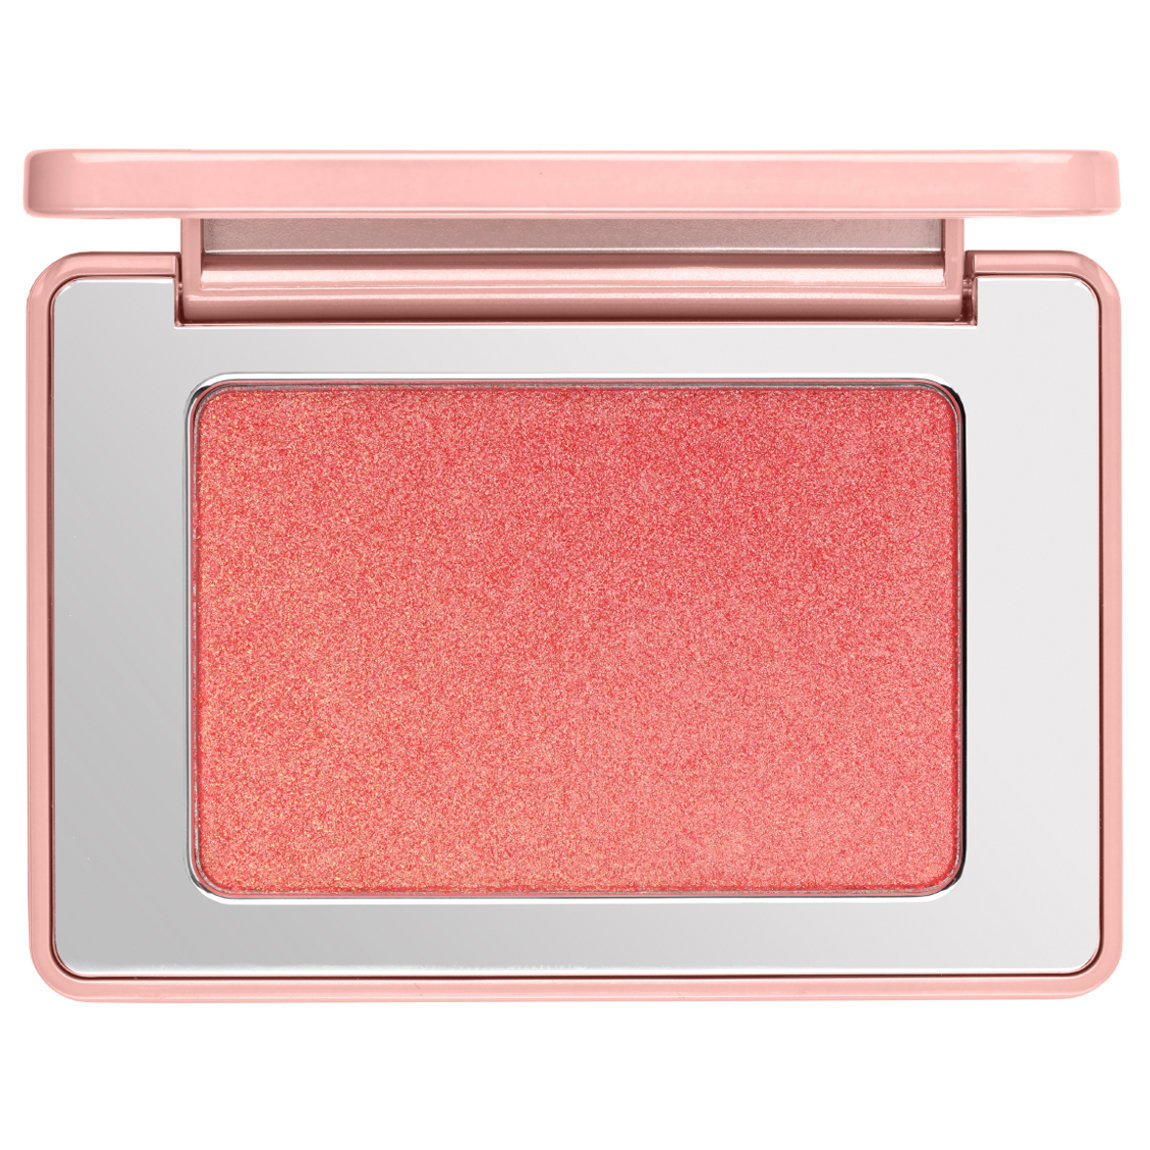 Natasha Denona Mini Bloom Highlighting Blush alternative view 1 - product swatch.